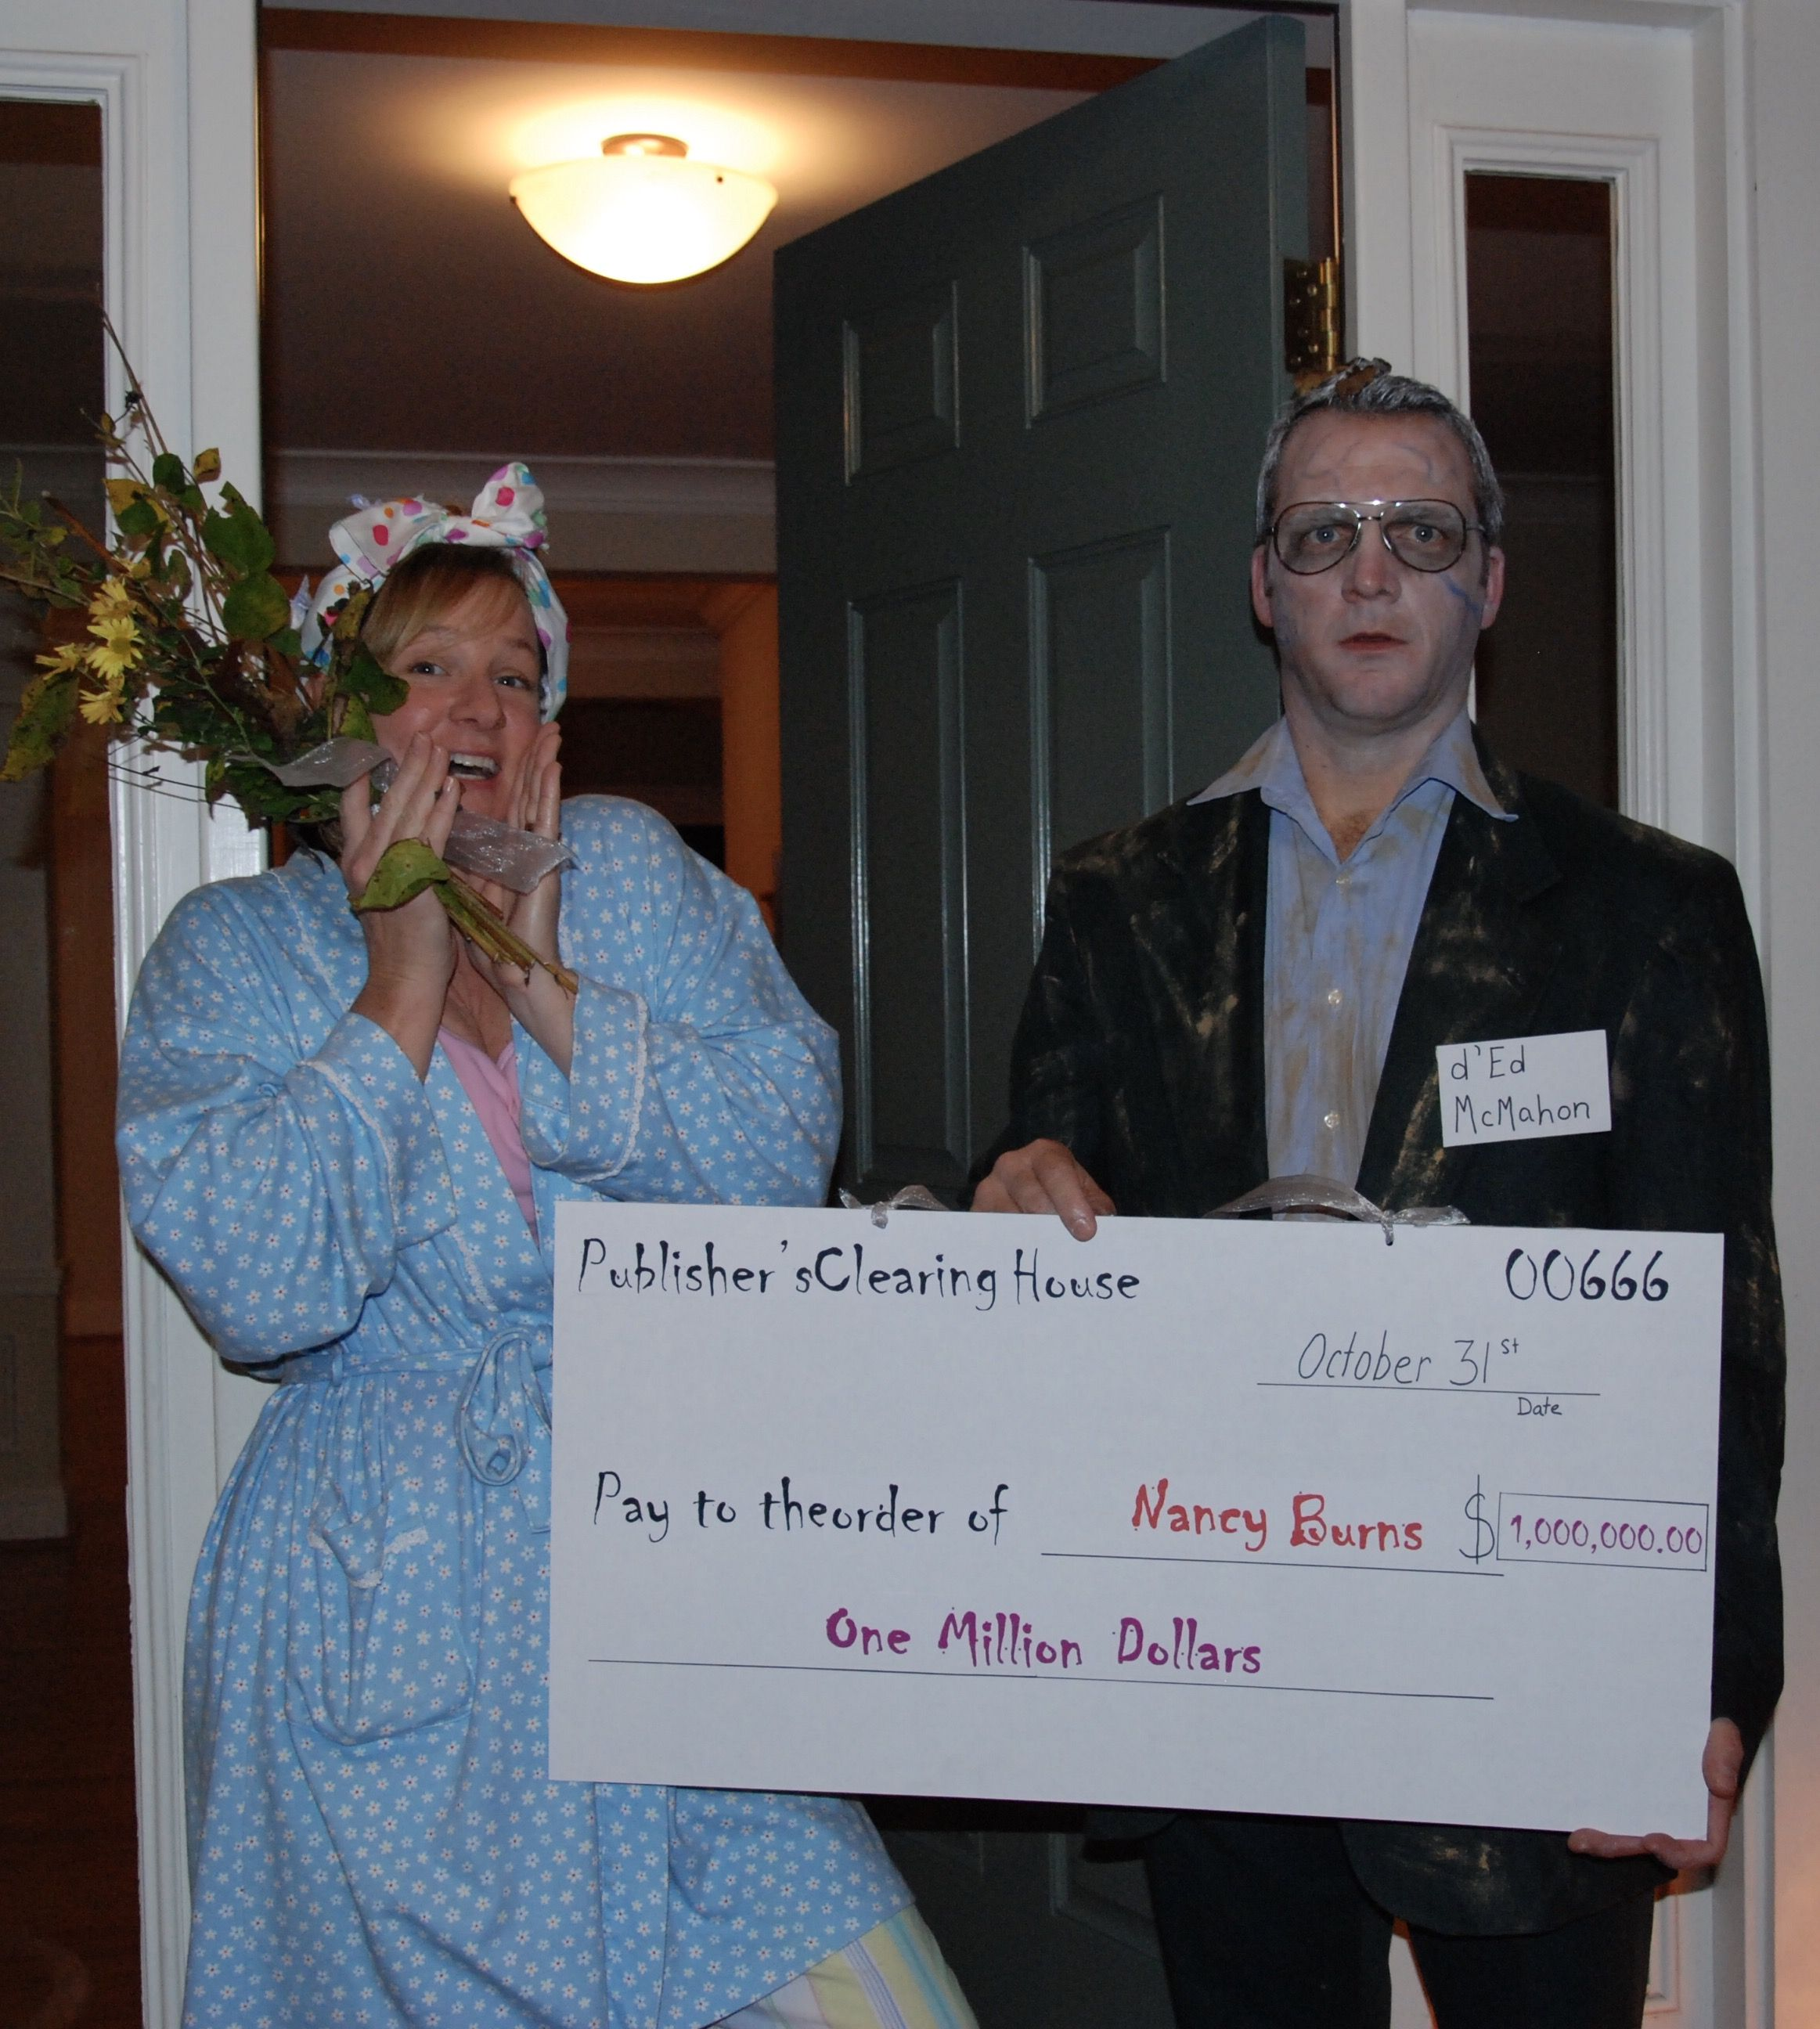 D'Ed McMahon/Publishers Clearing House  RIP Ed McMahon! | Halloween